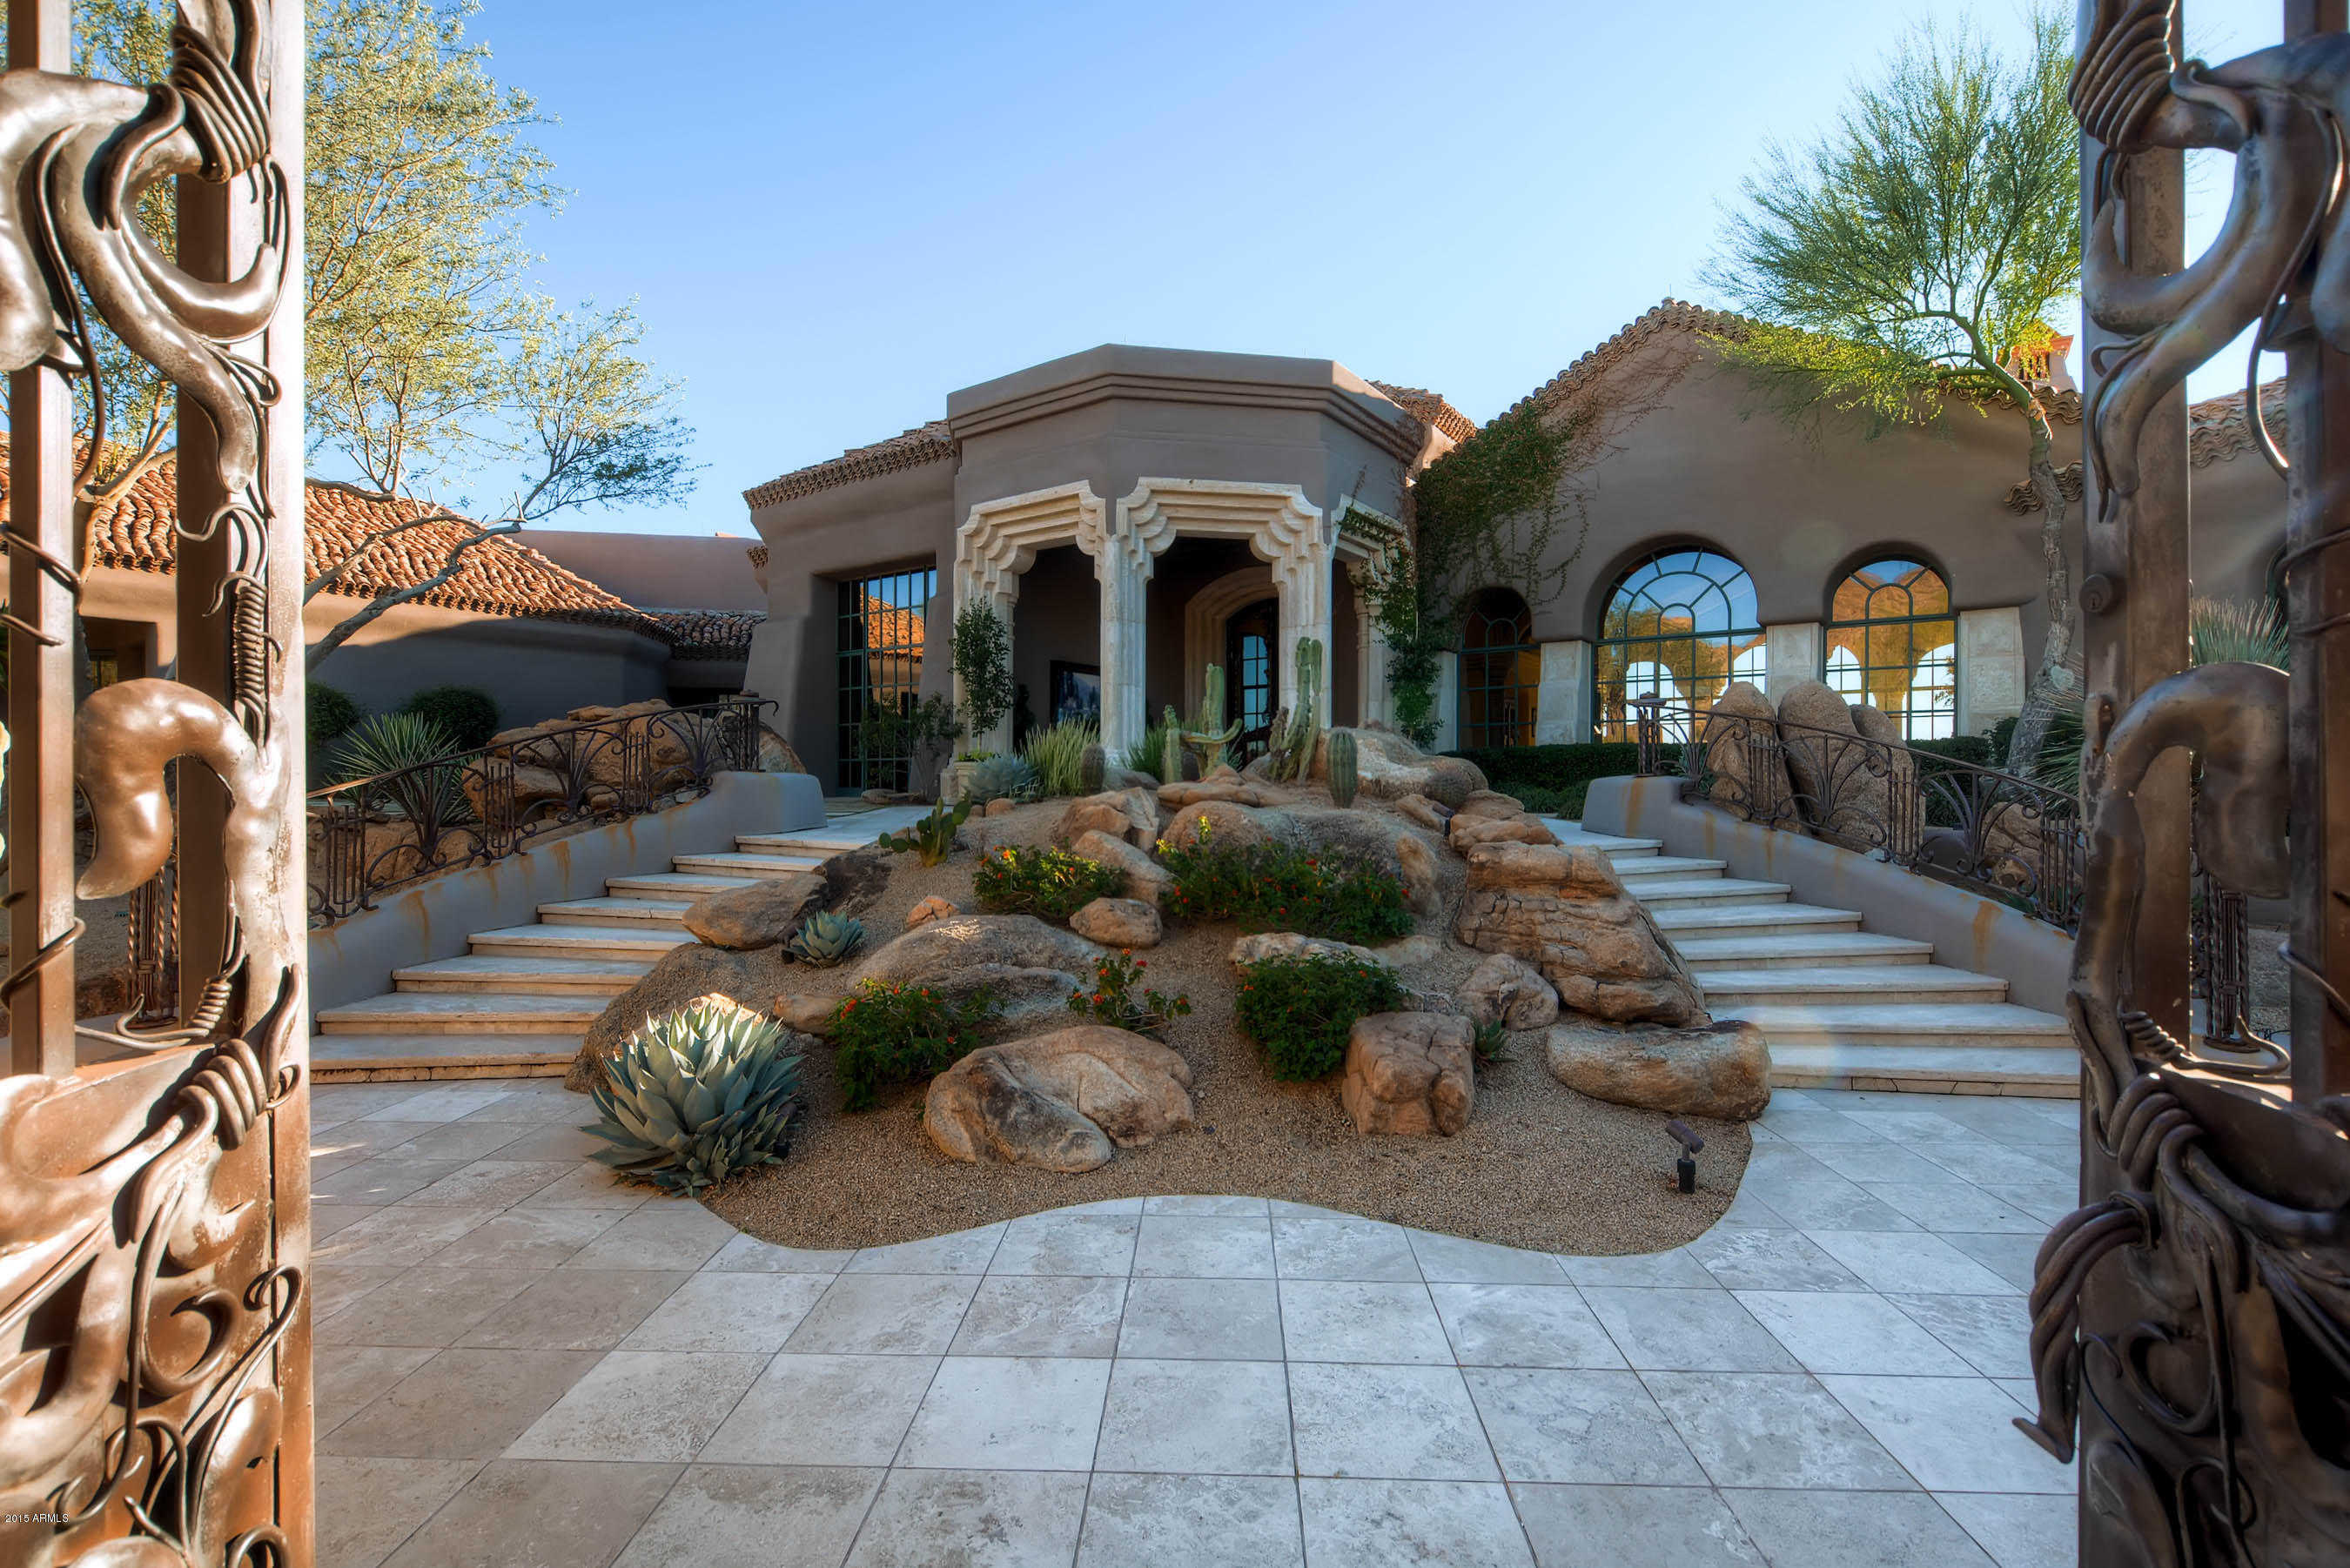 $8,900,000 - 6Br/10Ba - Home for Sale in Land Division 9422 E Happy Valley Rd Scottsdale Az217-04-522, 217-04-523, 217-04-524, Scottsdale